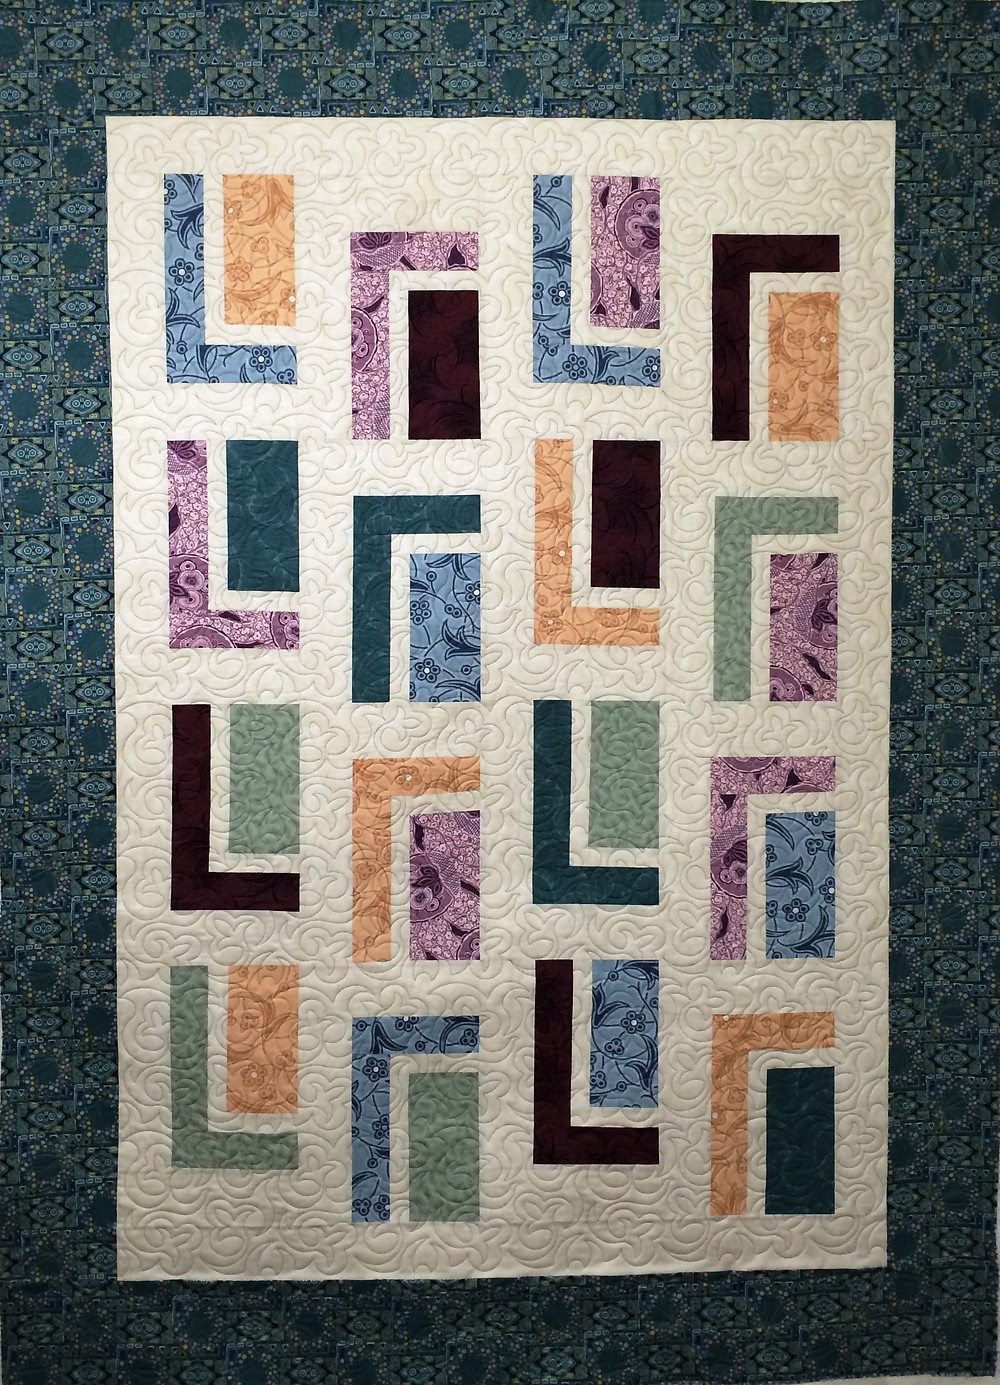 Urban Cabin Quilt by Lynne Capps